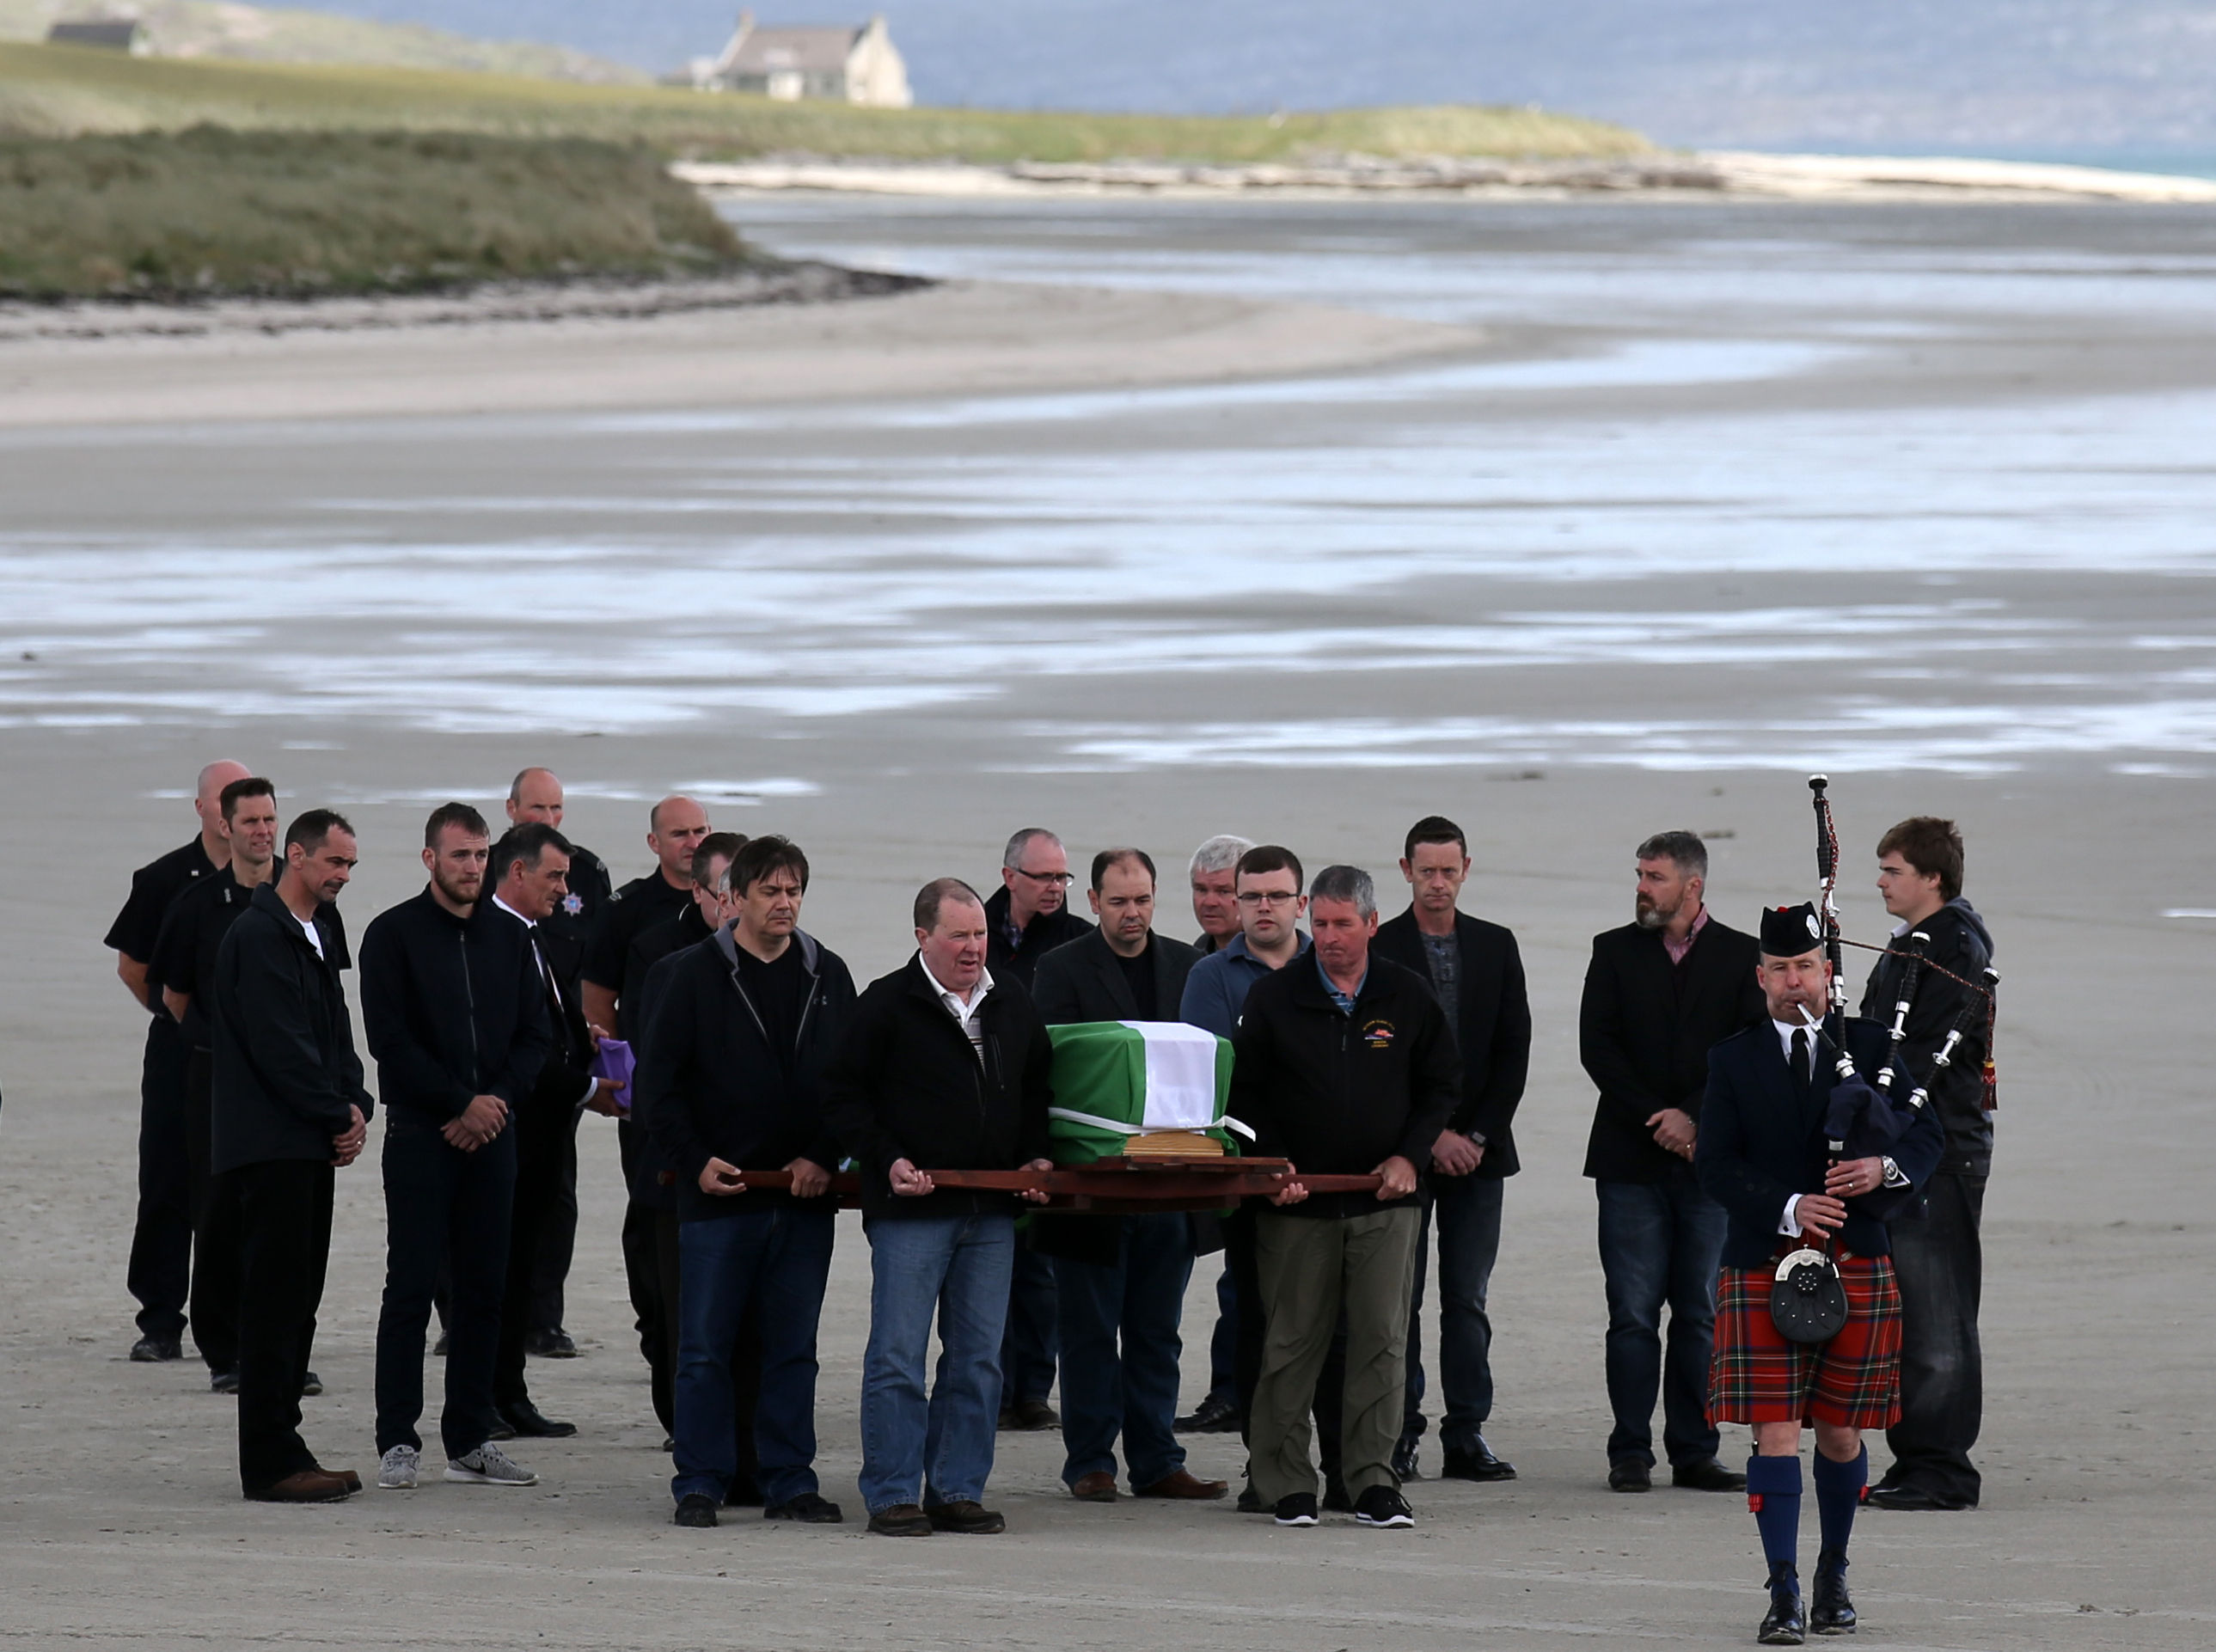 The coffin of Eilidh MacLeod draped in the Barra flag is carried across Traigh Mhor beach at Barra airport after it arrived by chartered plane. (Andrew Milligan/PA Wire)